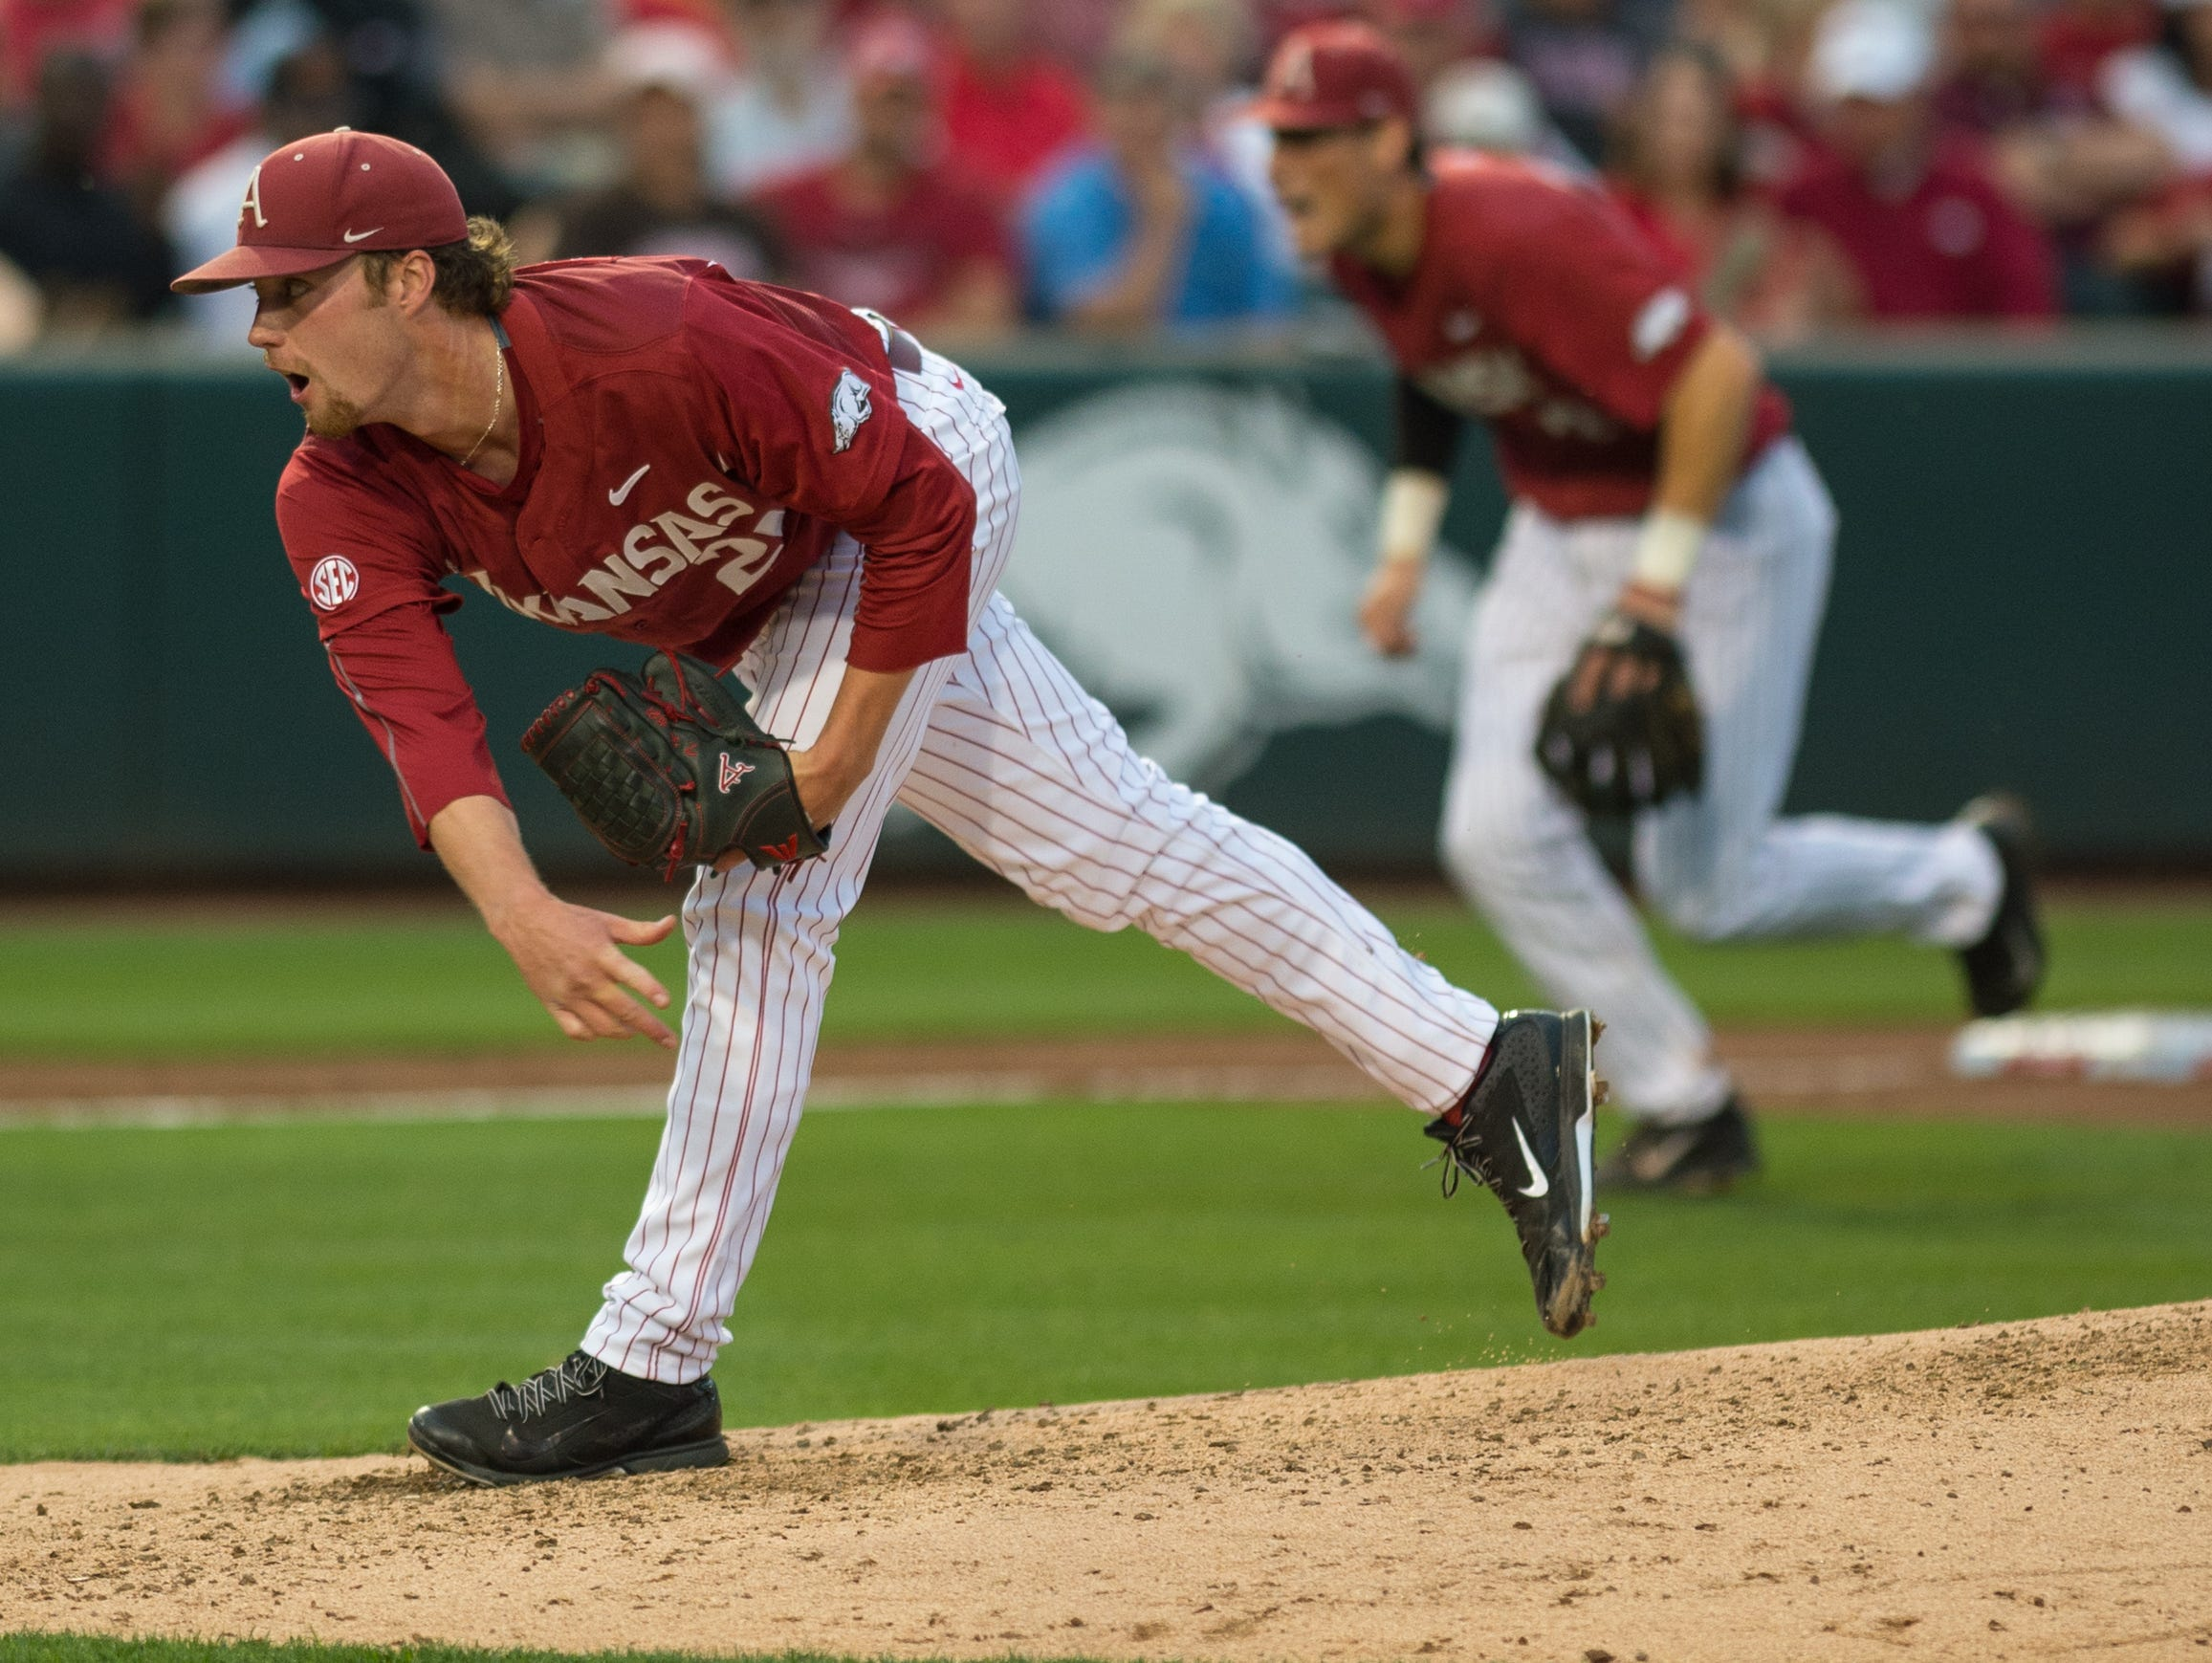 Arkansas' Trey Killian follows through on a pitch during Friday night's 5-4 loss to Tennessee at Baum Stadium in Fayetteville.